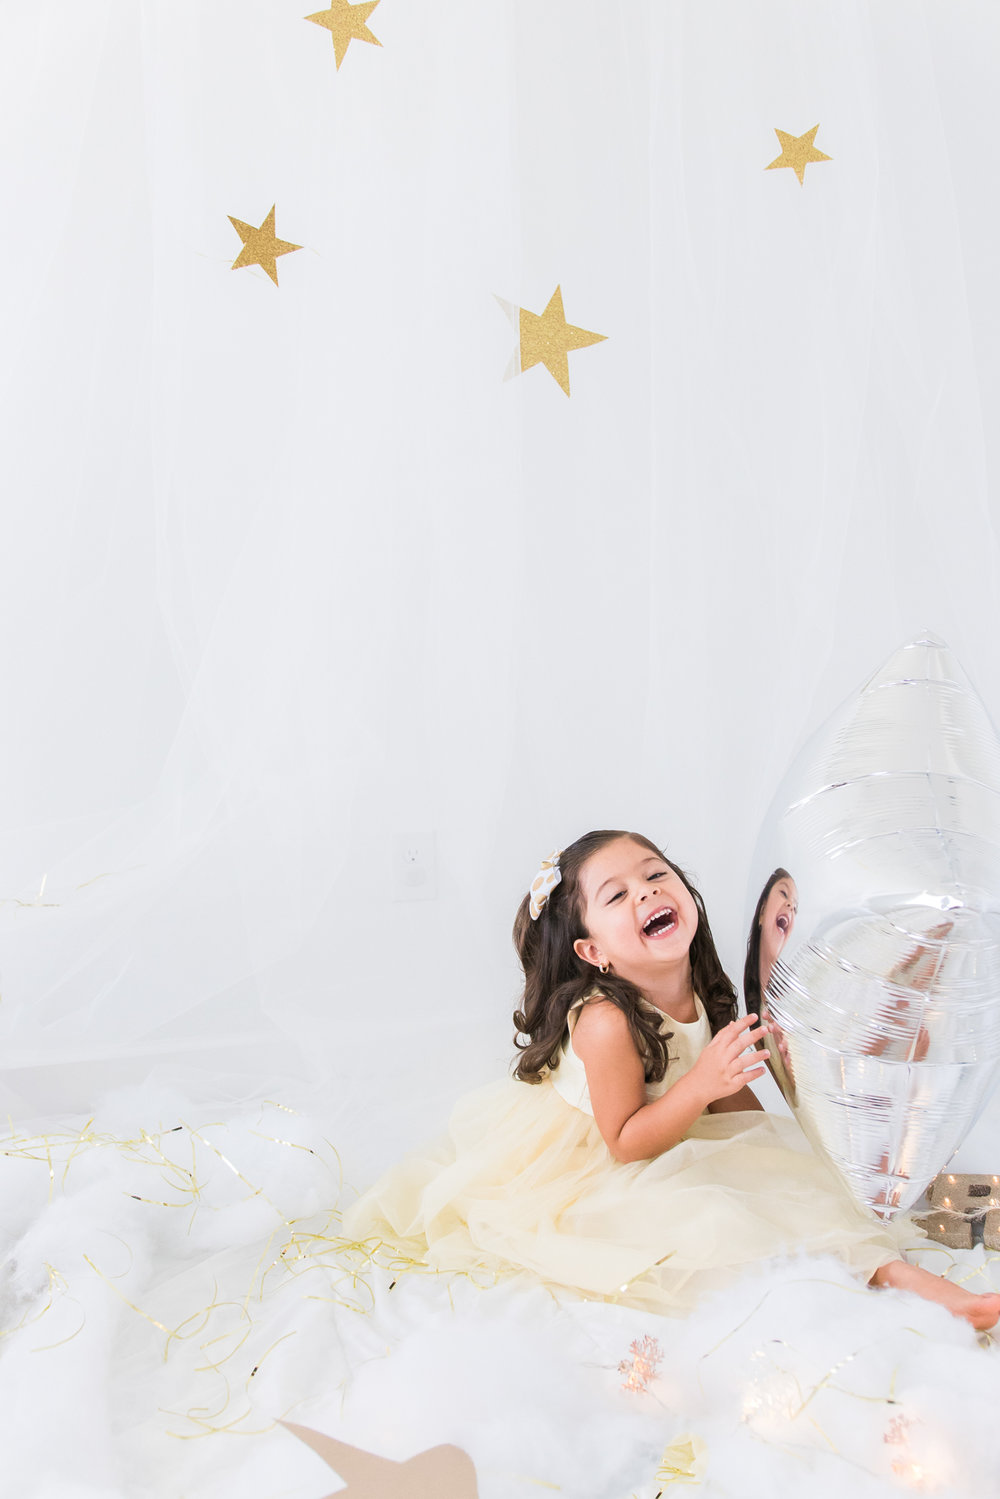 Twinkle-twinkle-little-star-girl-photo-session